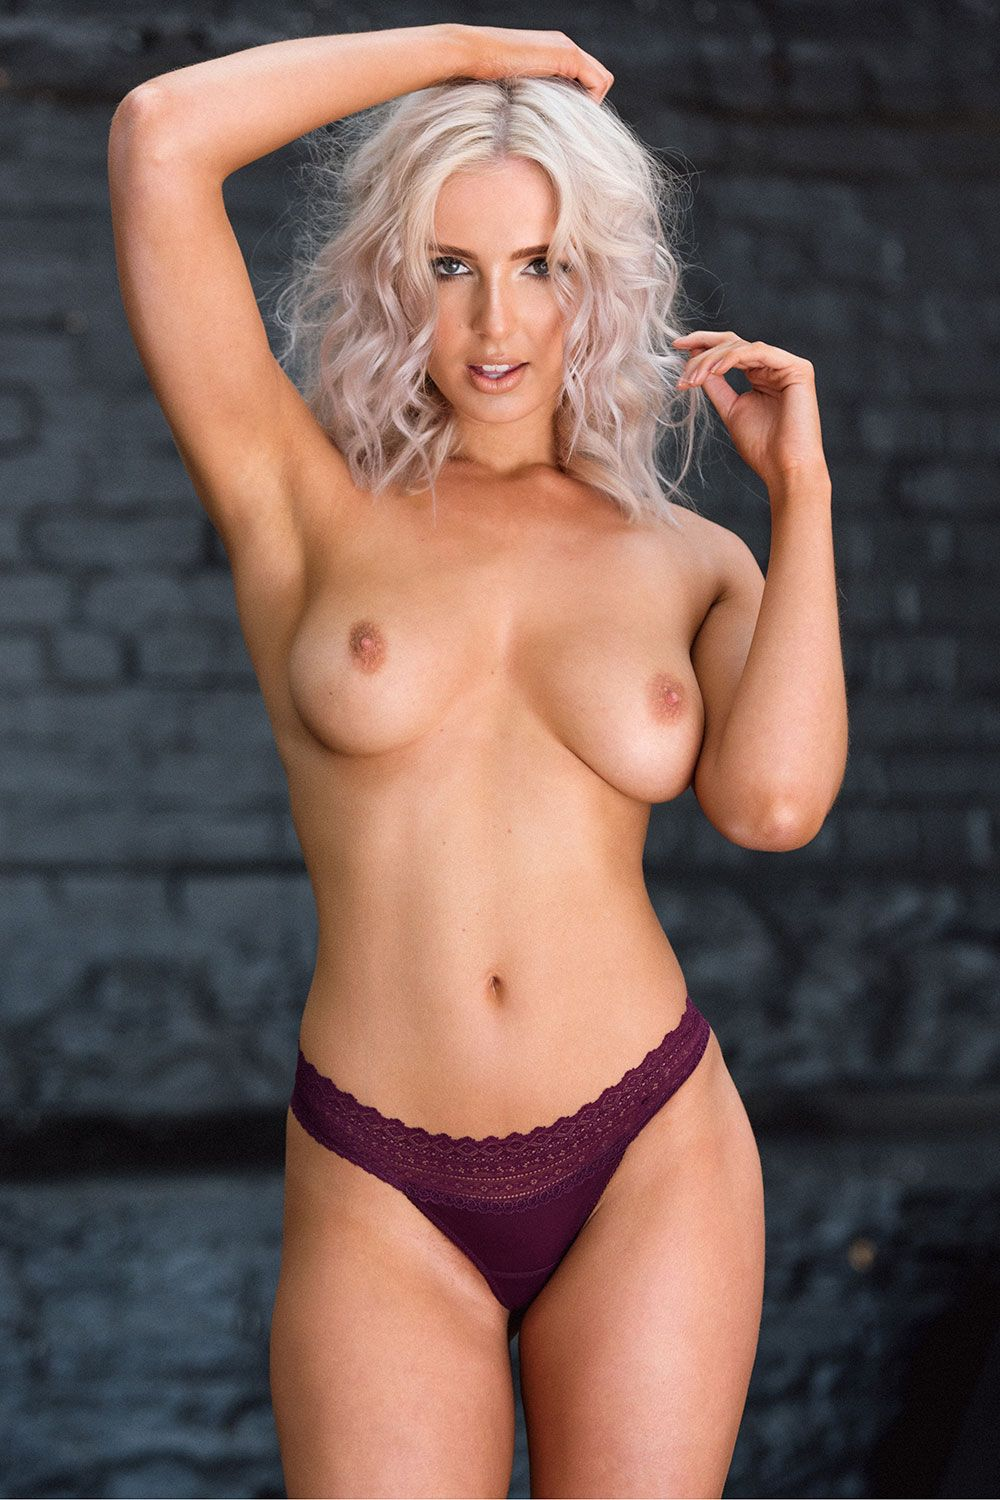 Lissy-Cunningham-Sexy-Topless-1 (3)